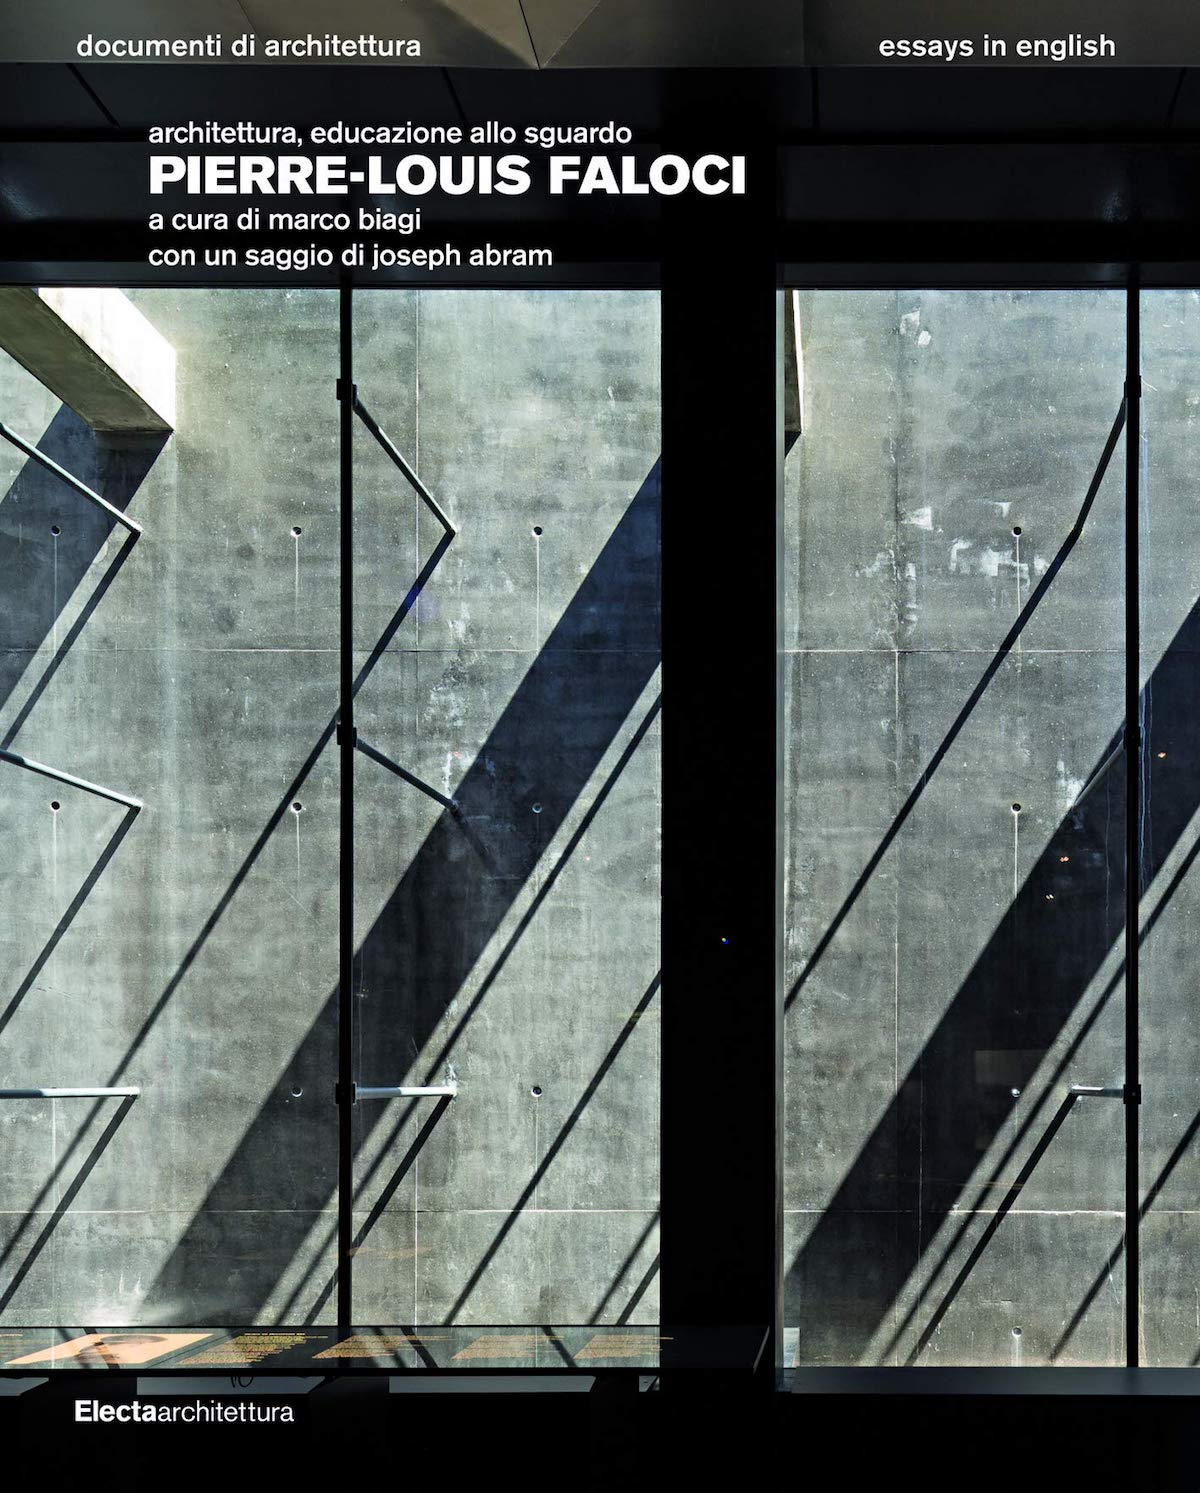 Pierre-Louis Faloci